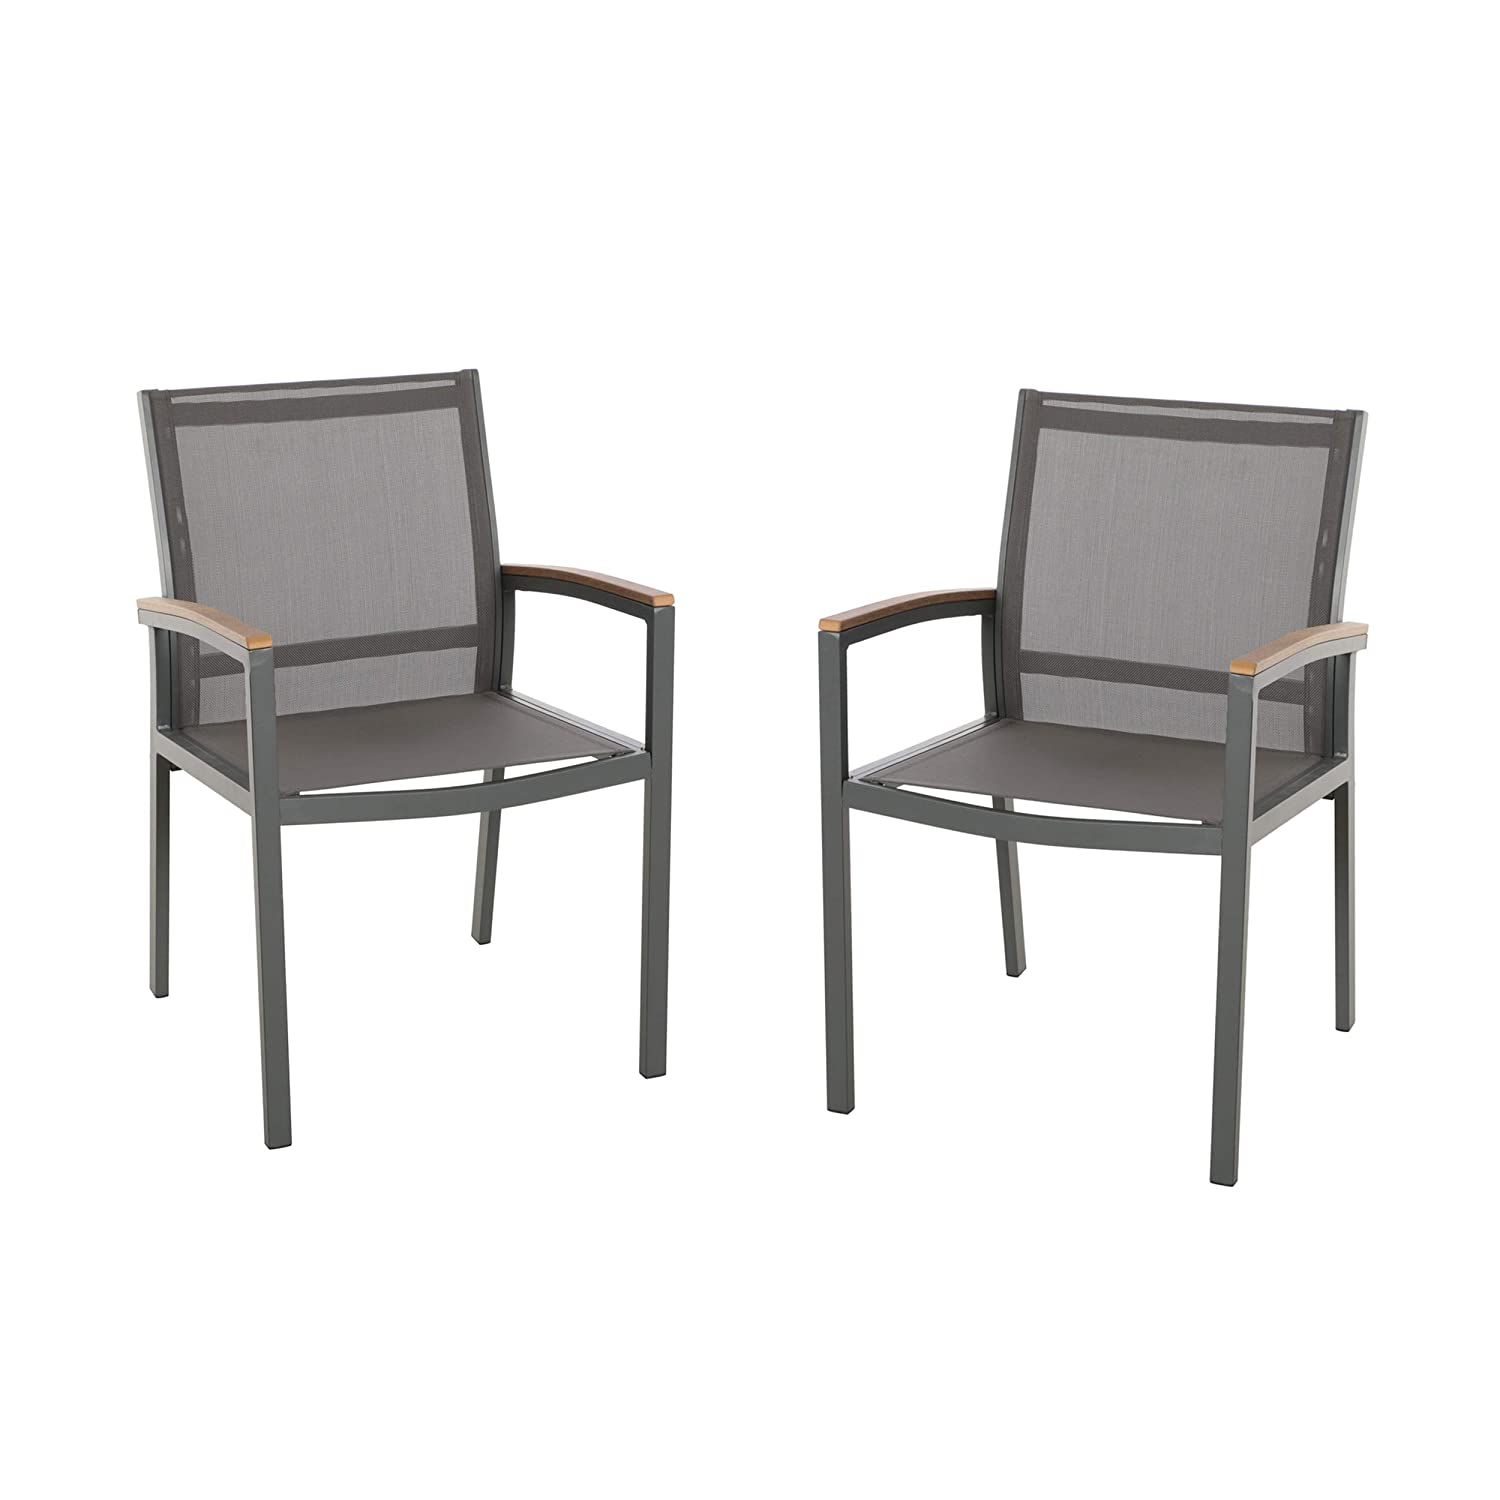 Amazon com great deal furniture emma outdoor mesh and aluminum frame dining chair set of 2 gray garden outdoor